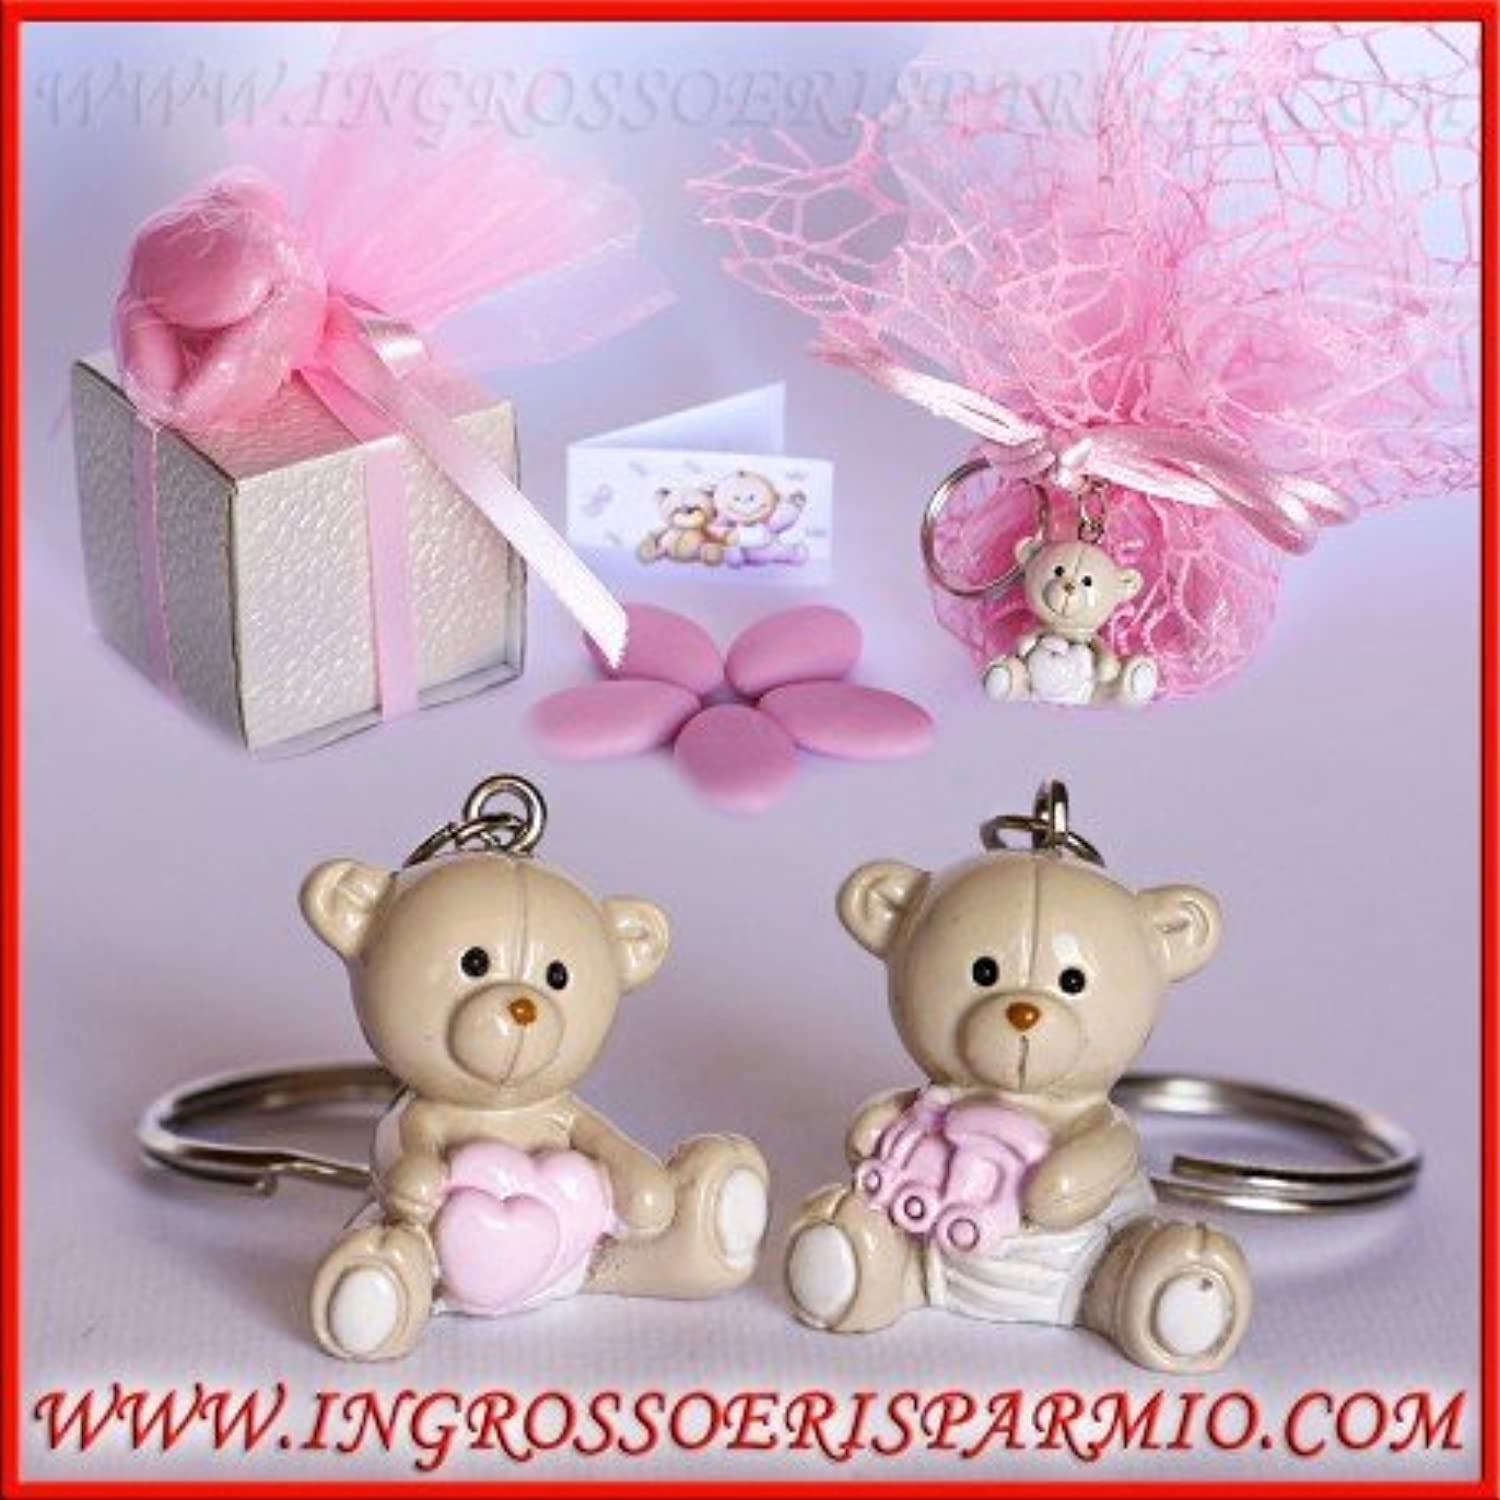 Pendant Keyring of Resin Bright in the form of Bear Decorated with Trencito or Pink Hearts between legs + confitera, Ideal for Souvenir of Birth, baptism, birthday girl kit 48 pz. No packaging